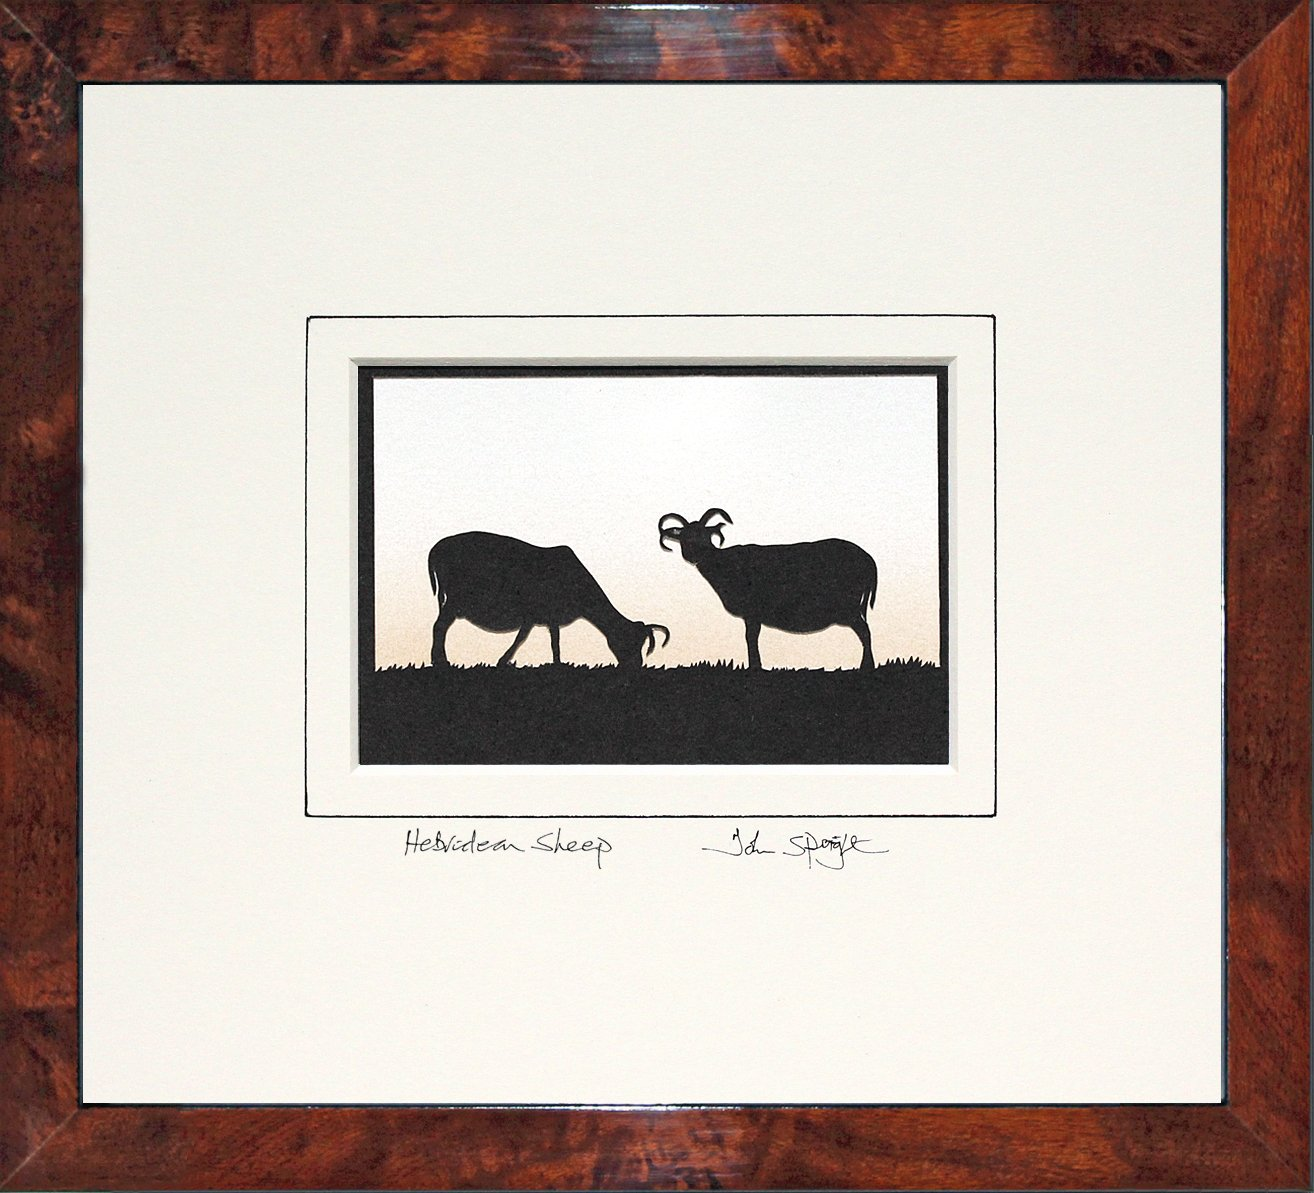 Hebridean Sheep Original Signed Hand Cut Silhouette Papercut Art by John Speight in Walnut Veneer Frame - Gift for Him and Her